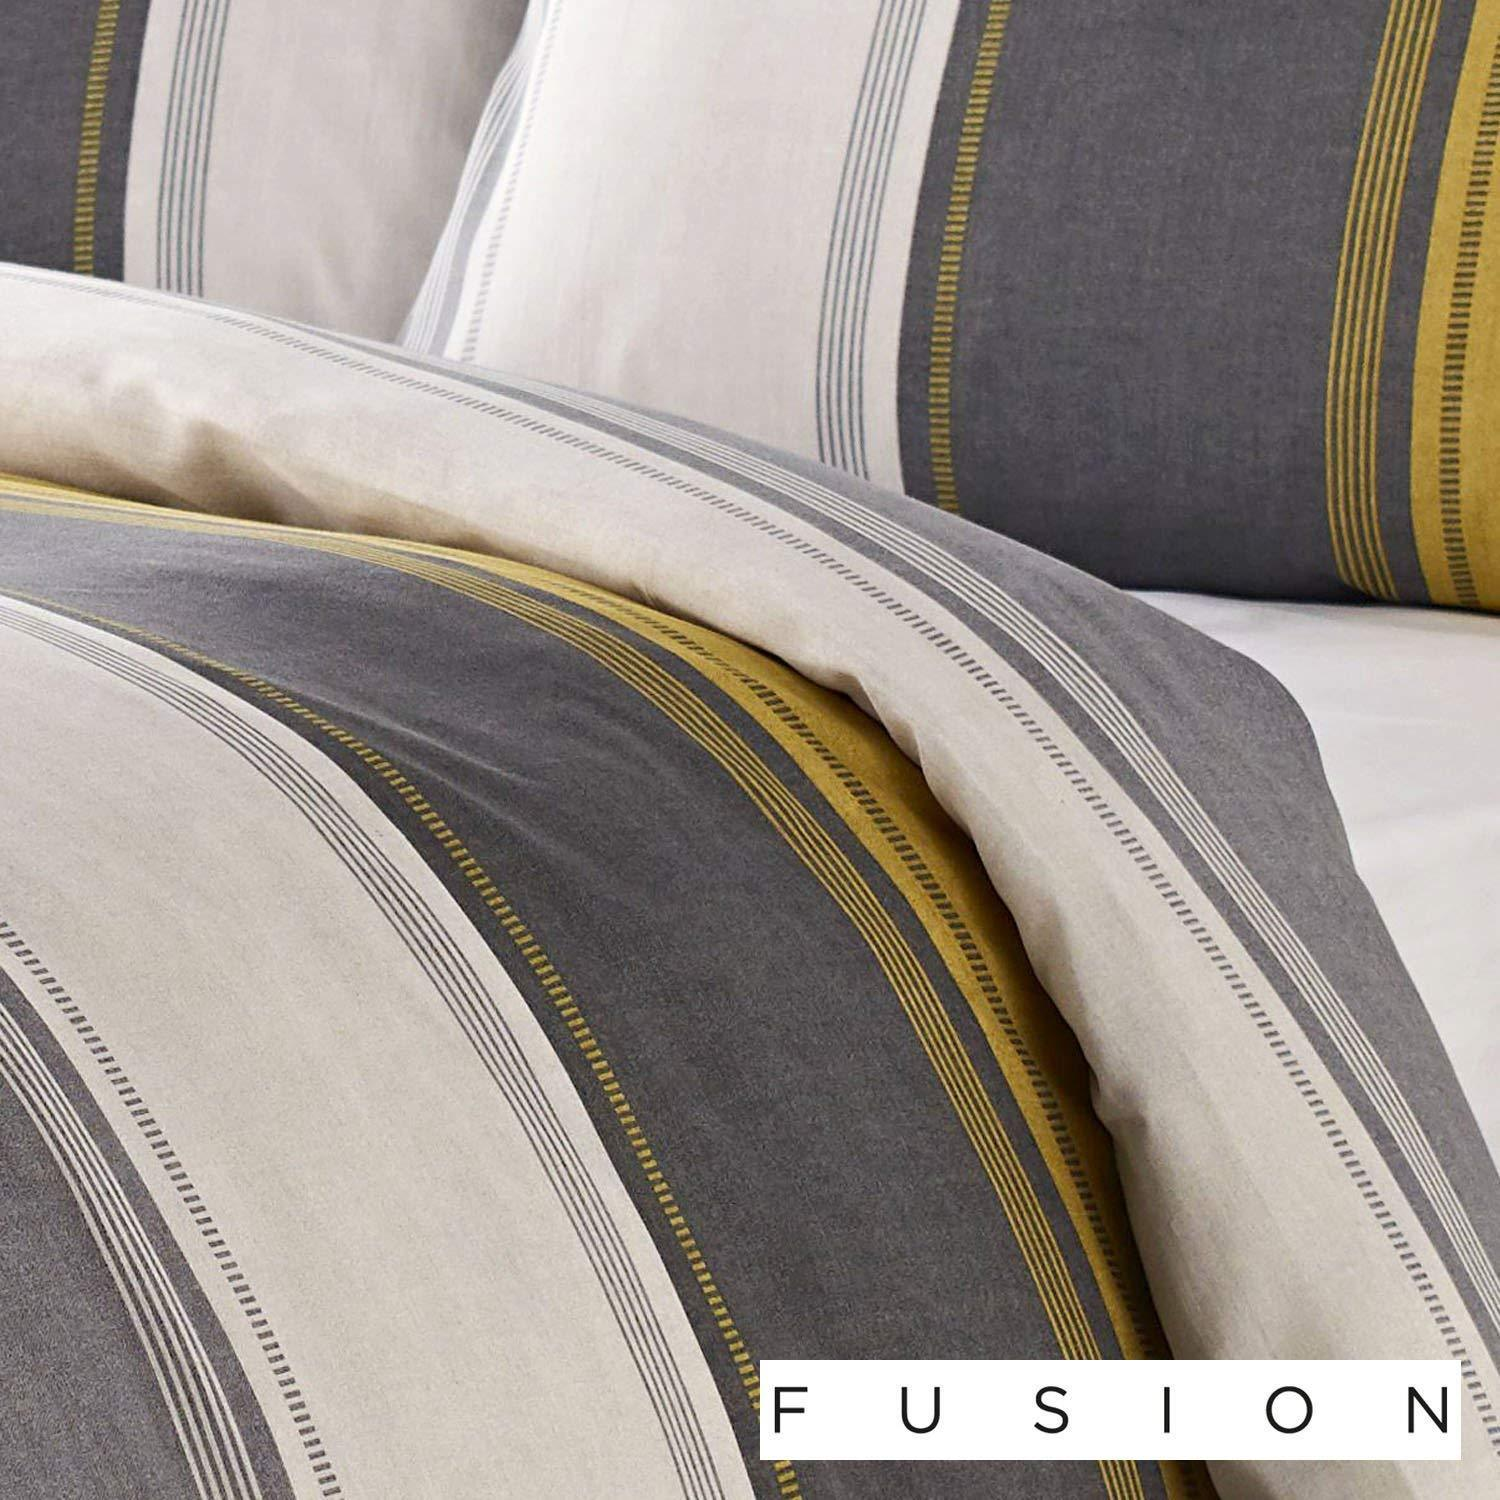 1ee3fe4bcb93 Fusion Betley Wide Stripe Duvet Cover Bedding Set Ochre. £14.99 ...